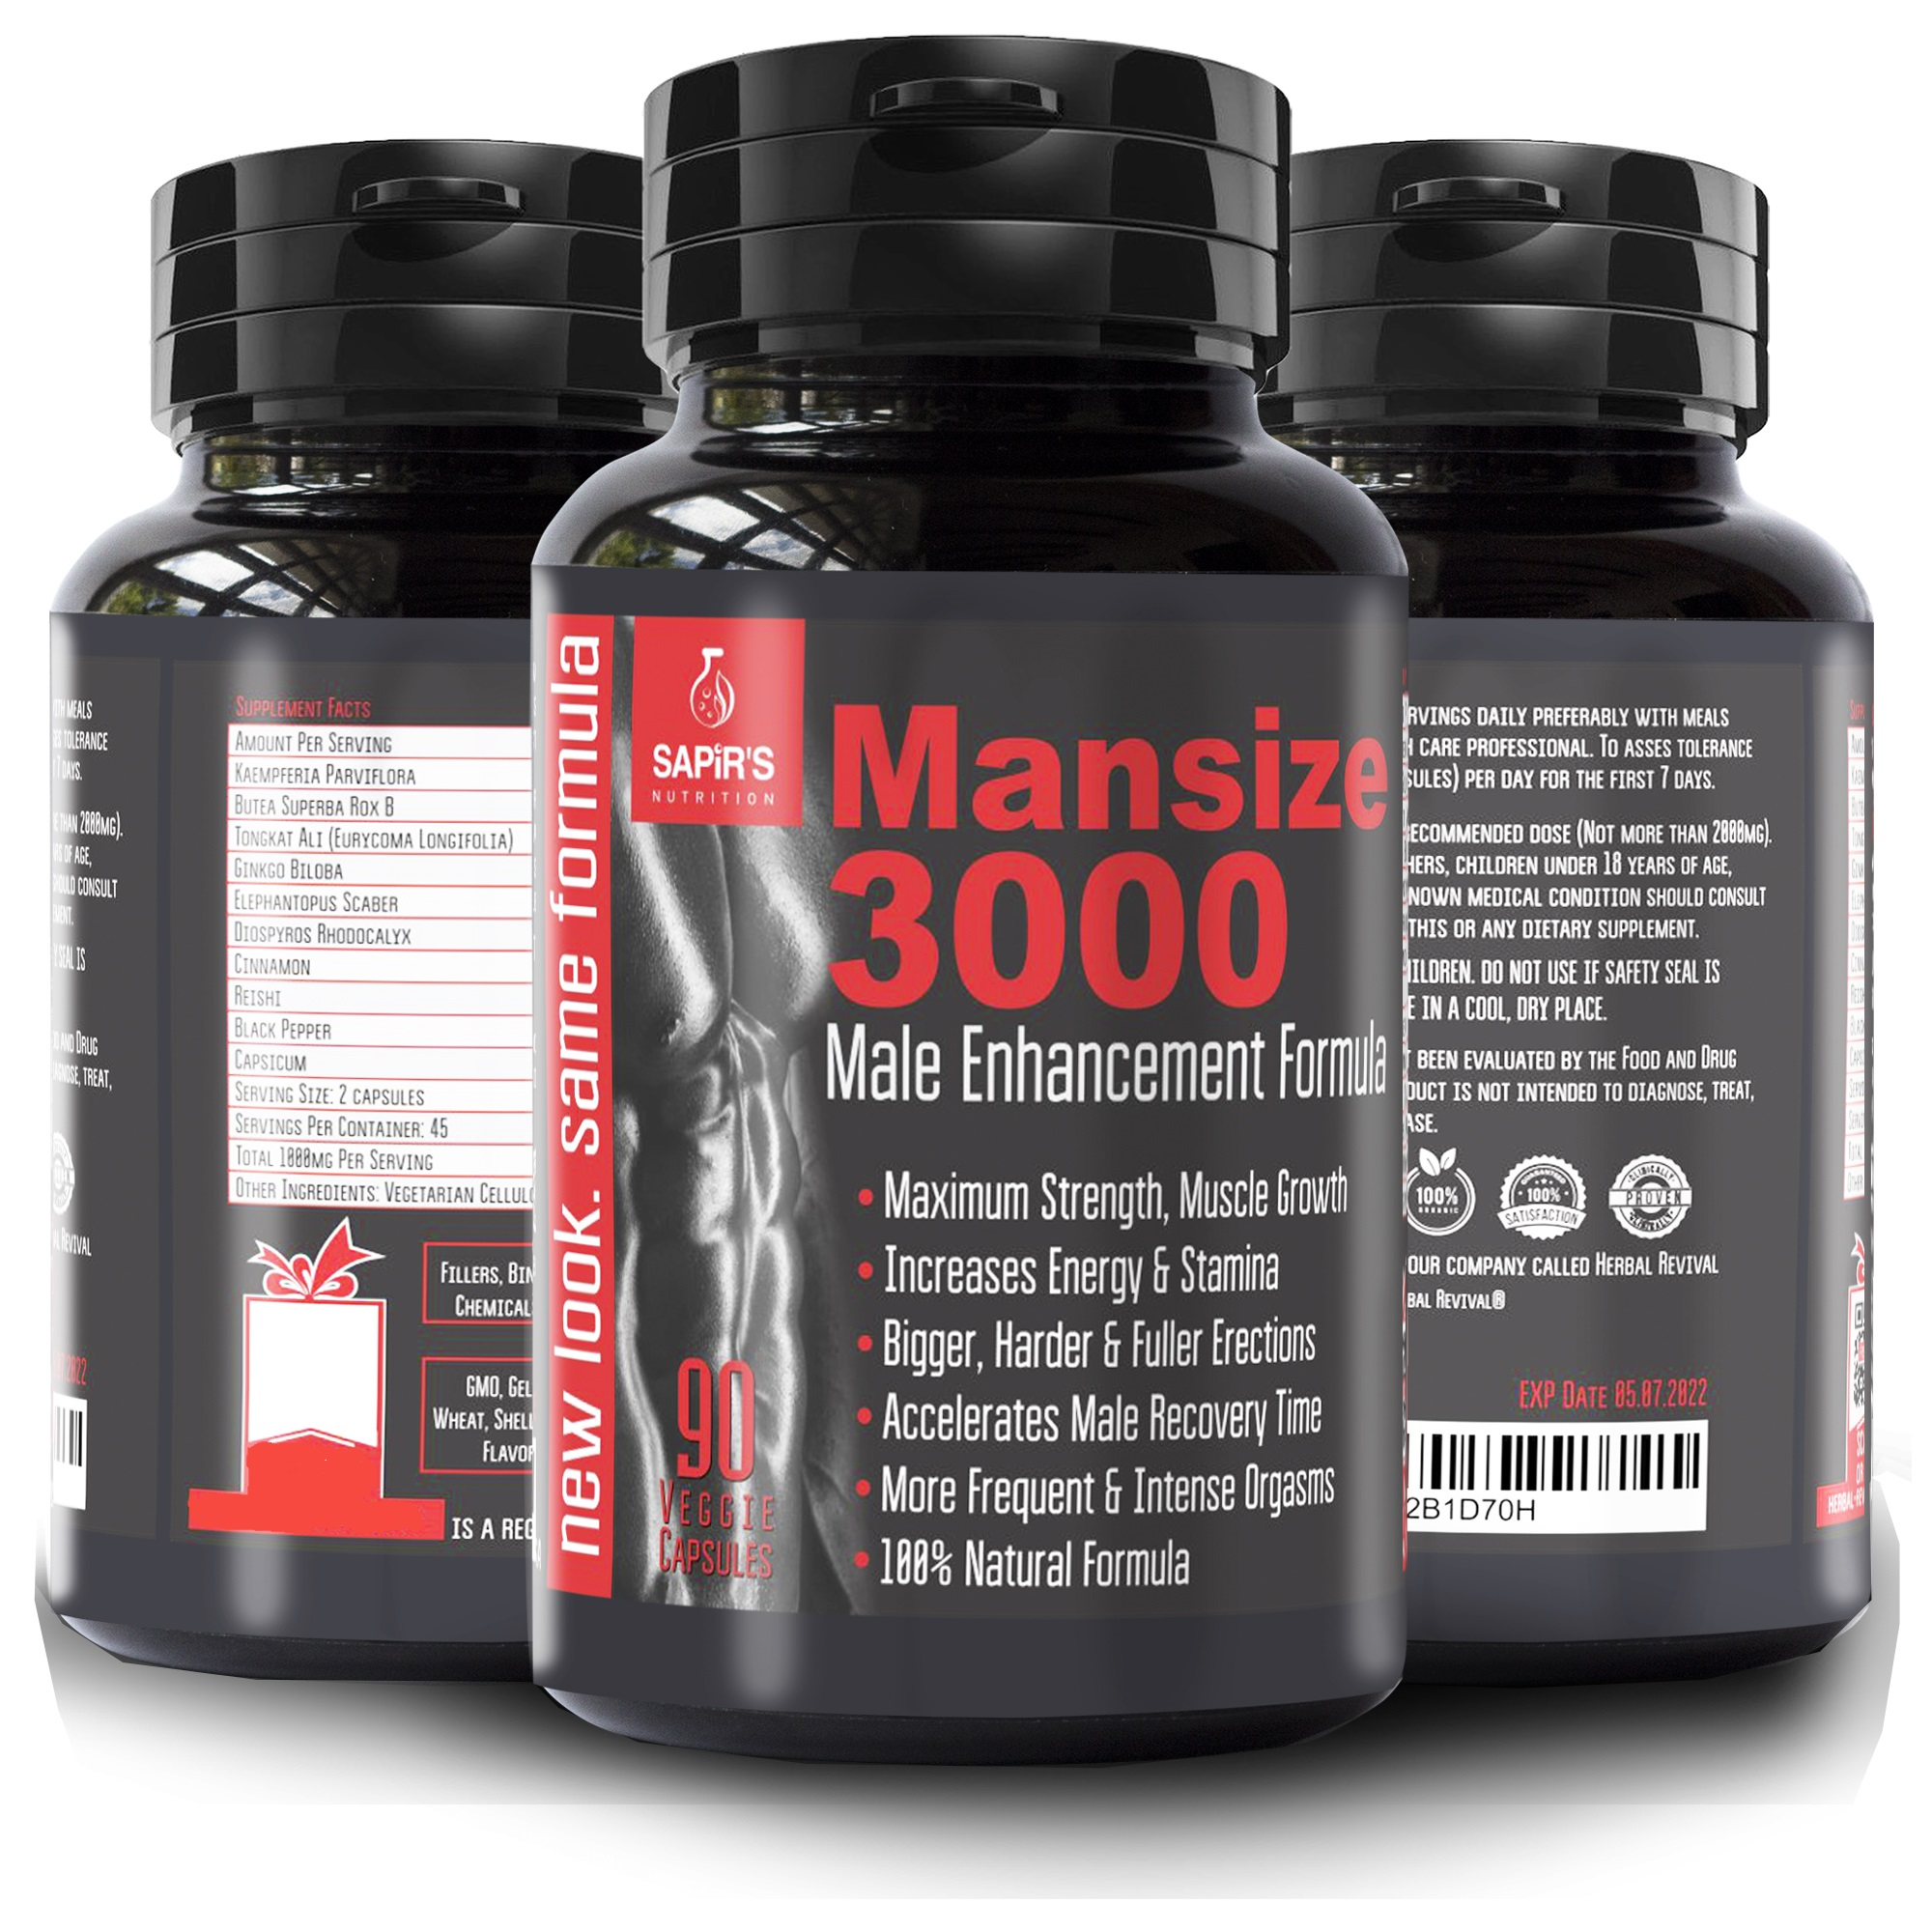 Mansize 3000 Male Enlarger Xl Supplement - Sexual Performance Enhancement Pills Best Male Testosterone Male Penis Enlarger Growth Pills Sex Enhancer Big Dick 90 Vegetable Cellulose Capsules